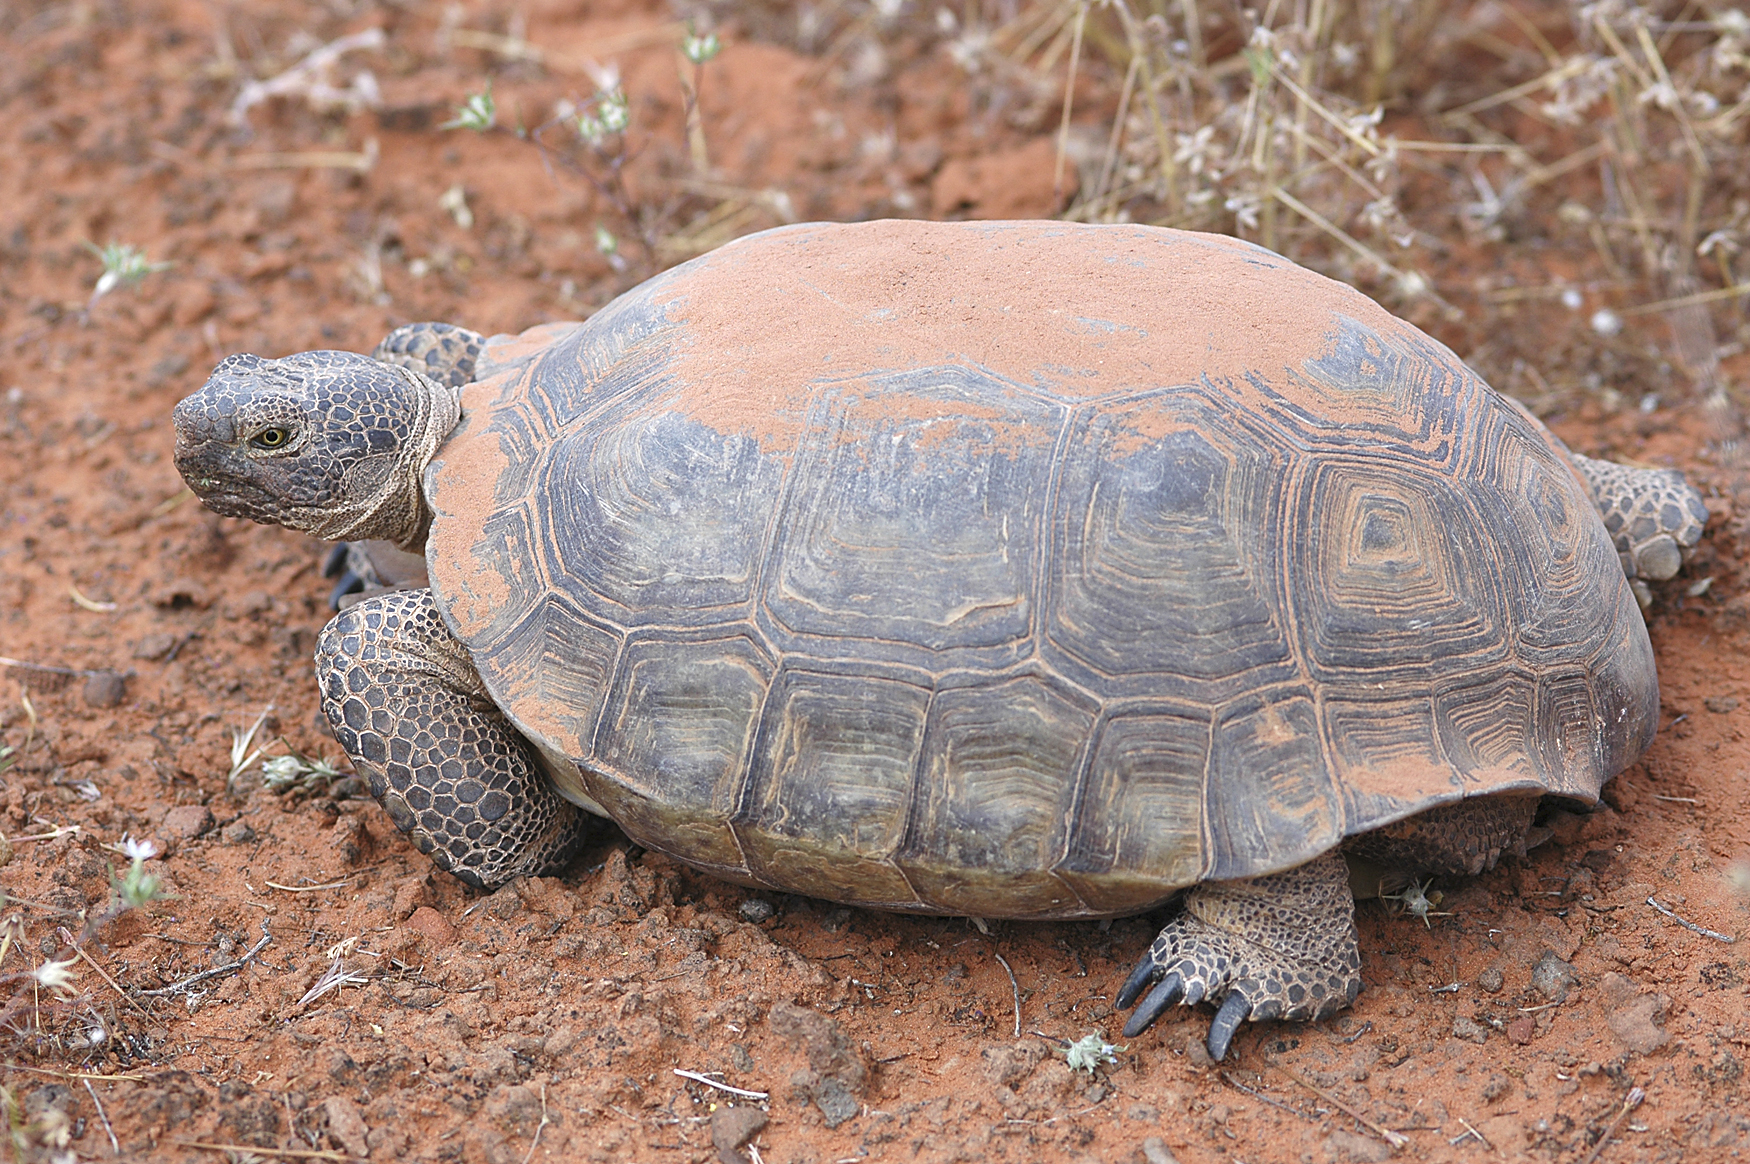 http://upload.wikimedia.org/wikipedia/commons/e/e7/Desert_tortoise.jpg